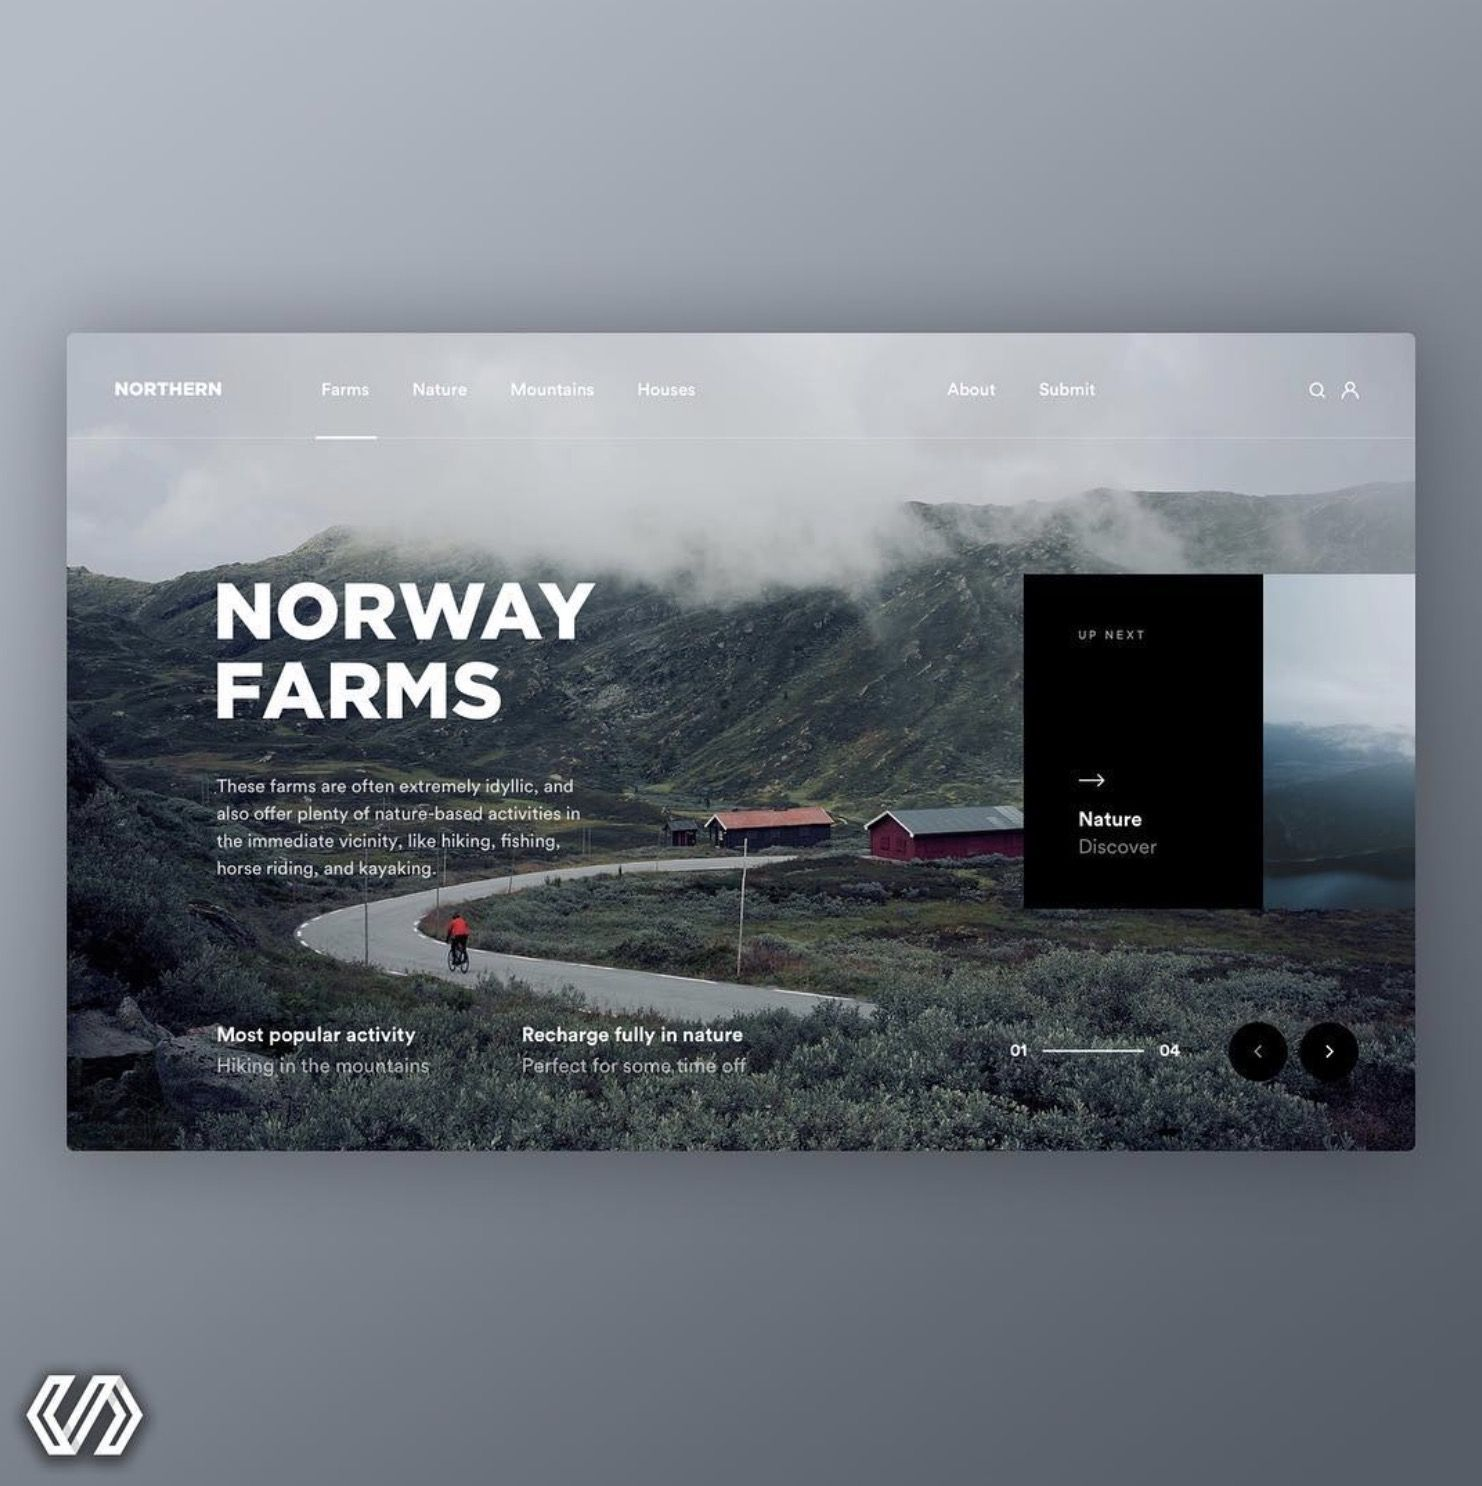 Web Design Inspiration 2020 2021 8 Gorgeous New Examples Web Design Inspiration Web Design Web Design Tips